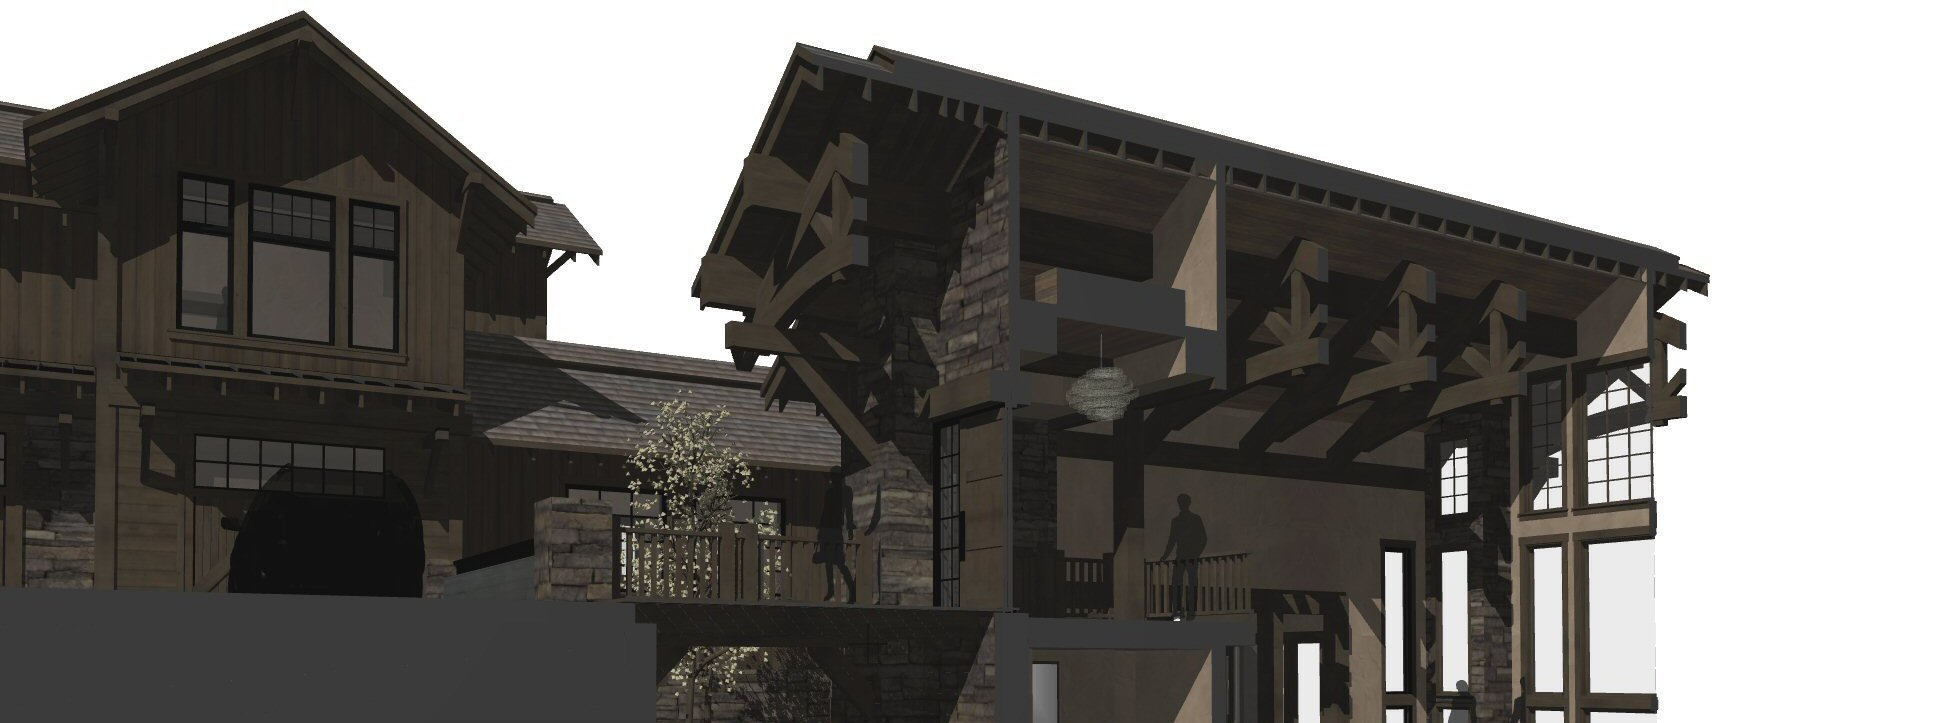 plan-west-design-firm-_projects-in-process-512